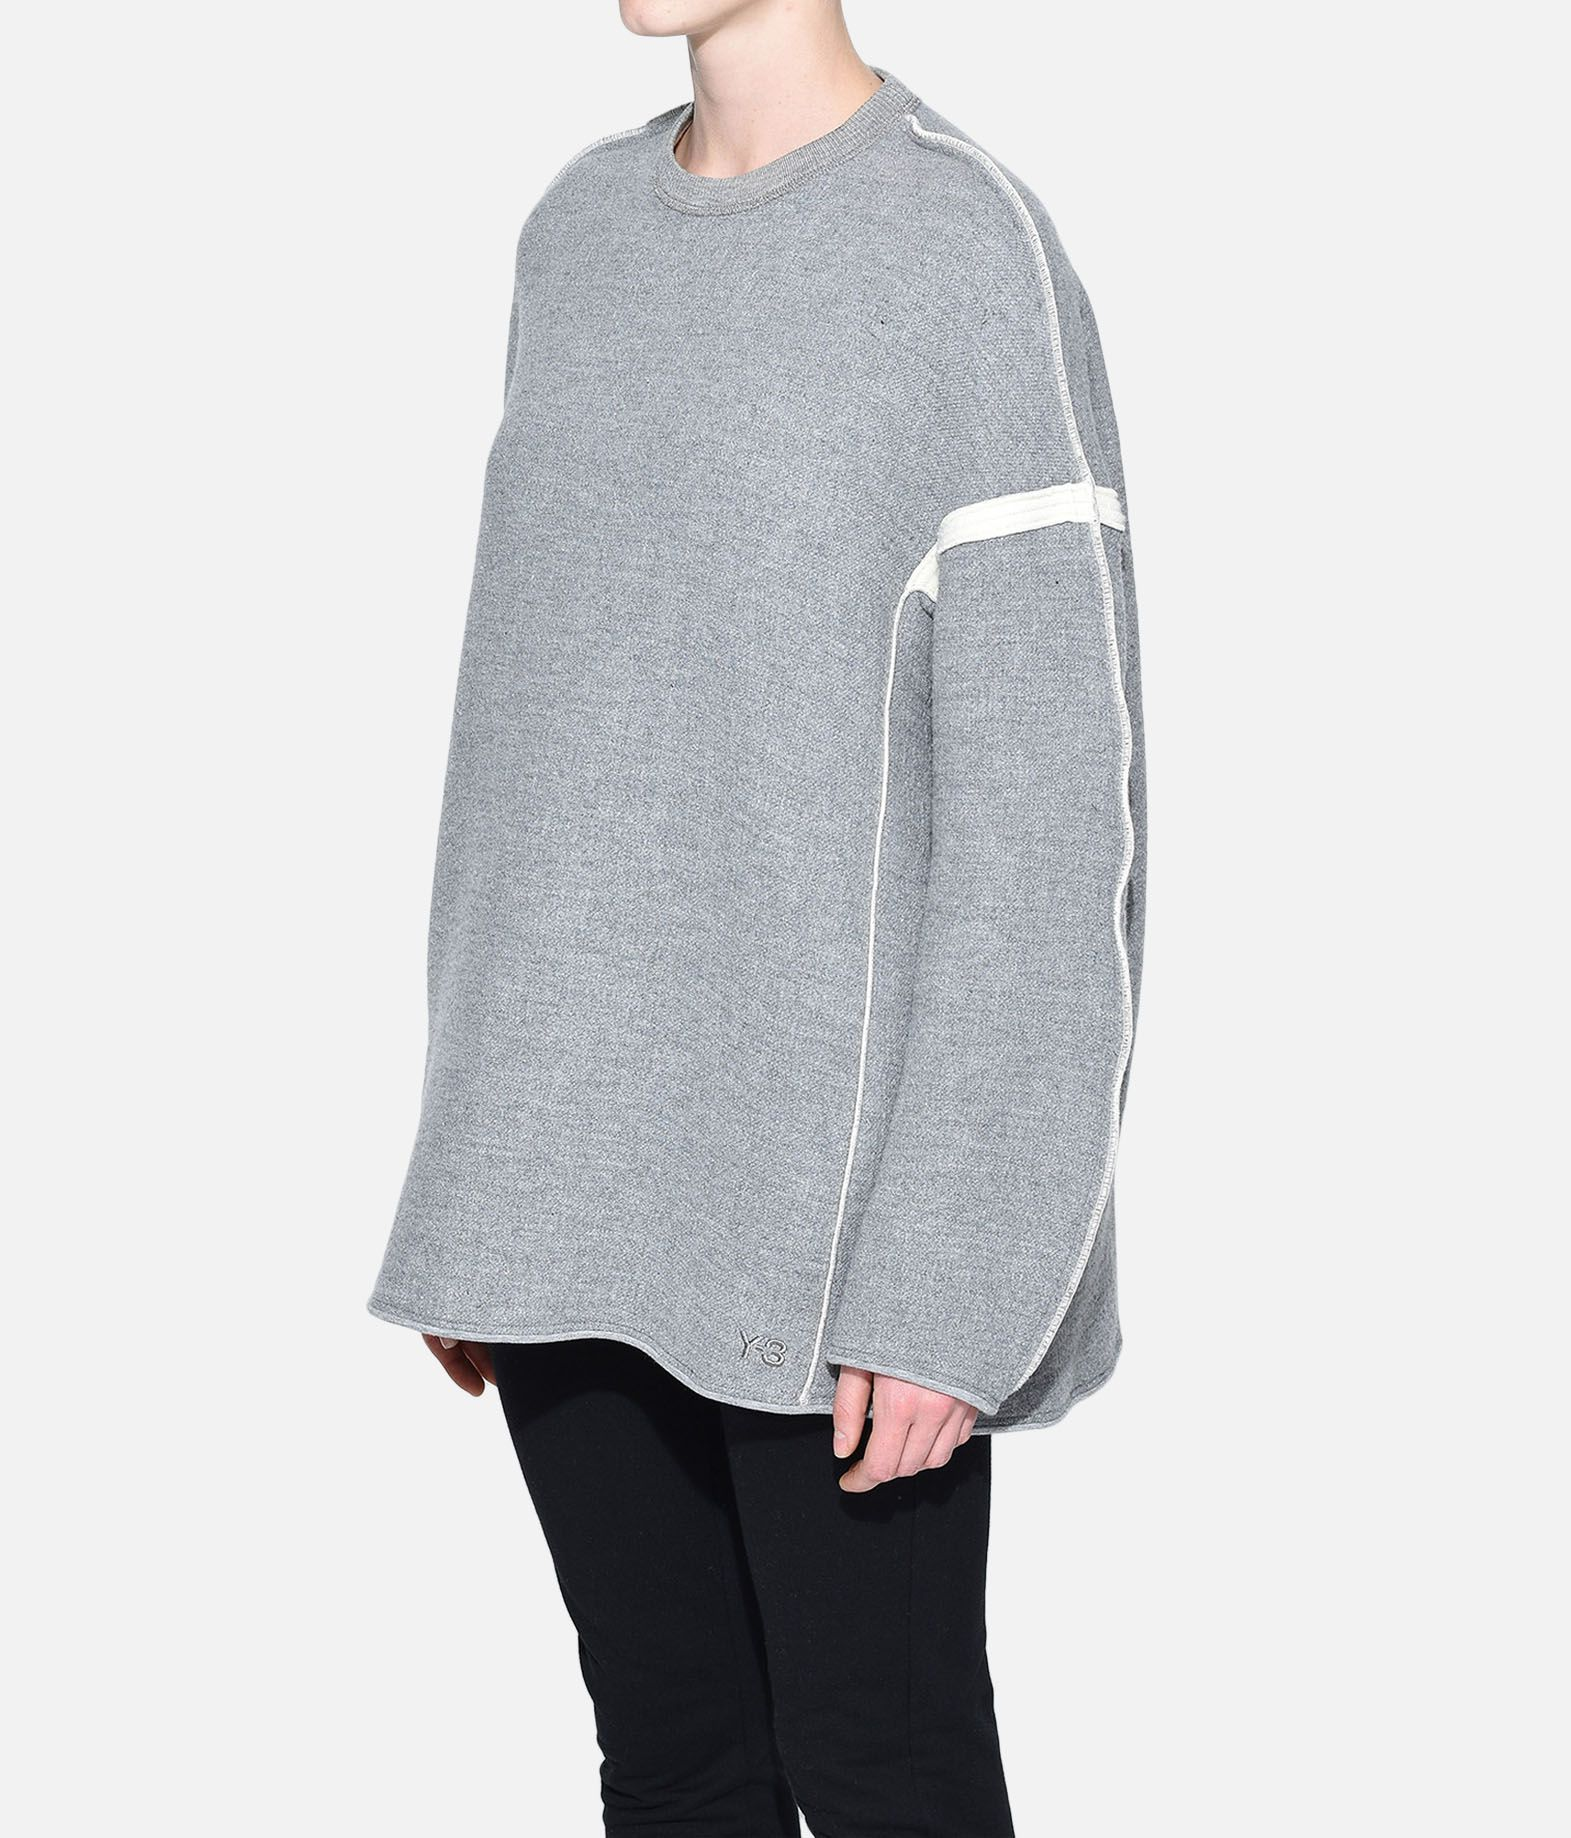 Y-3 Y-3 Oversize Spacer Wool Sweater Sweatshirt Woman e